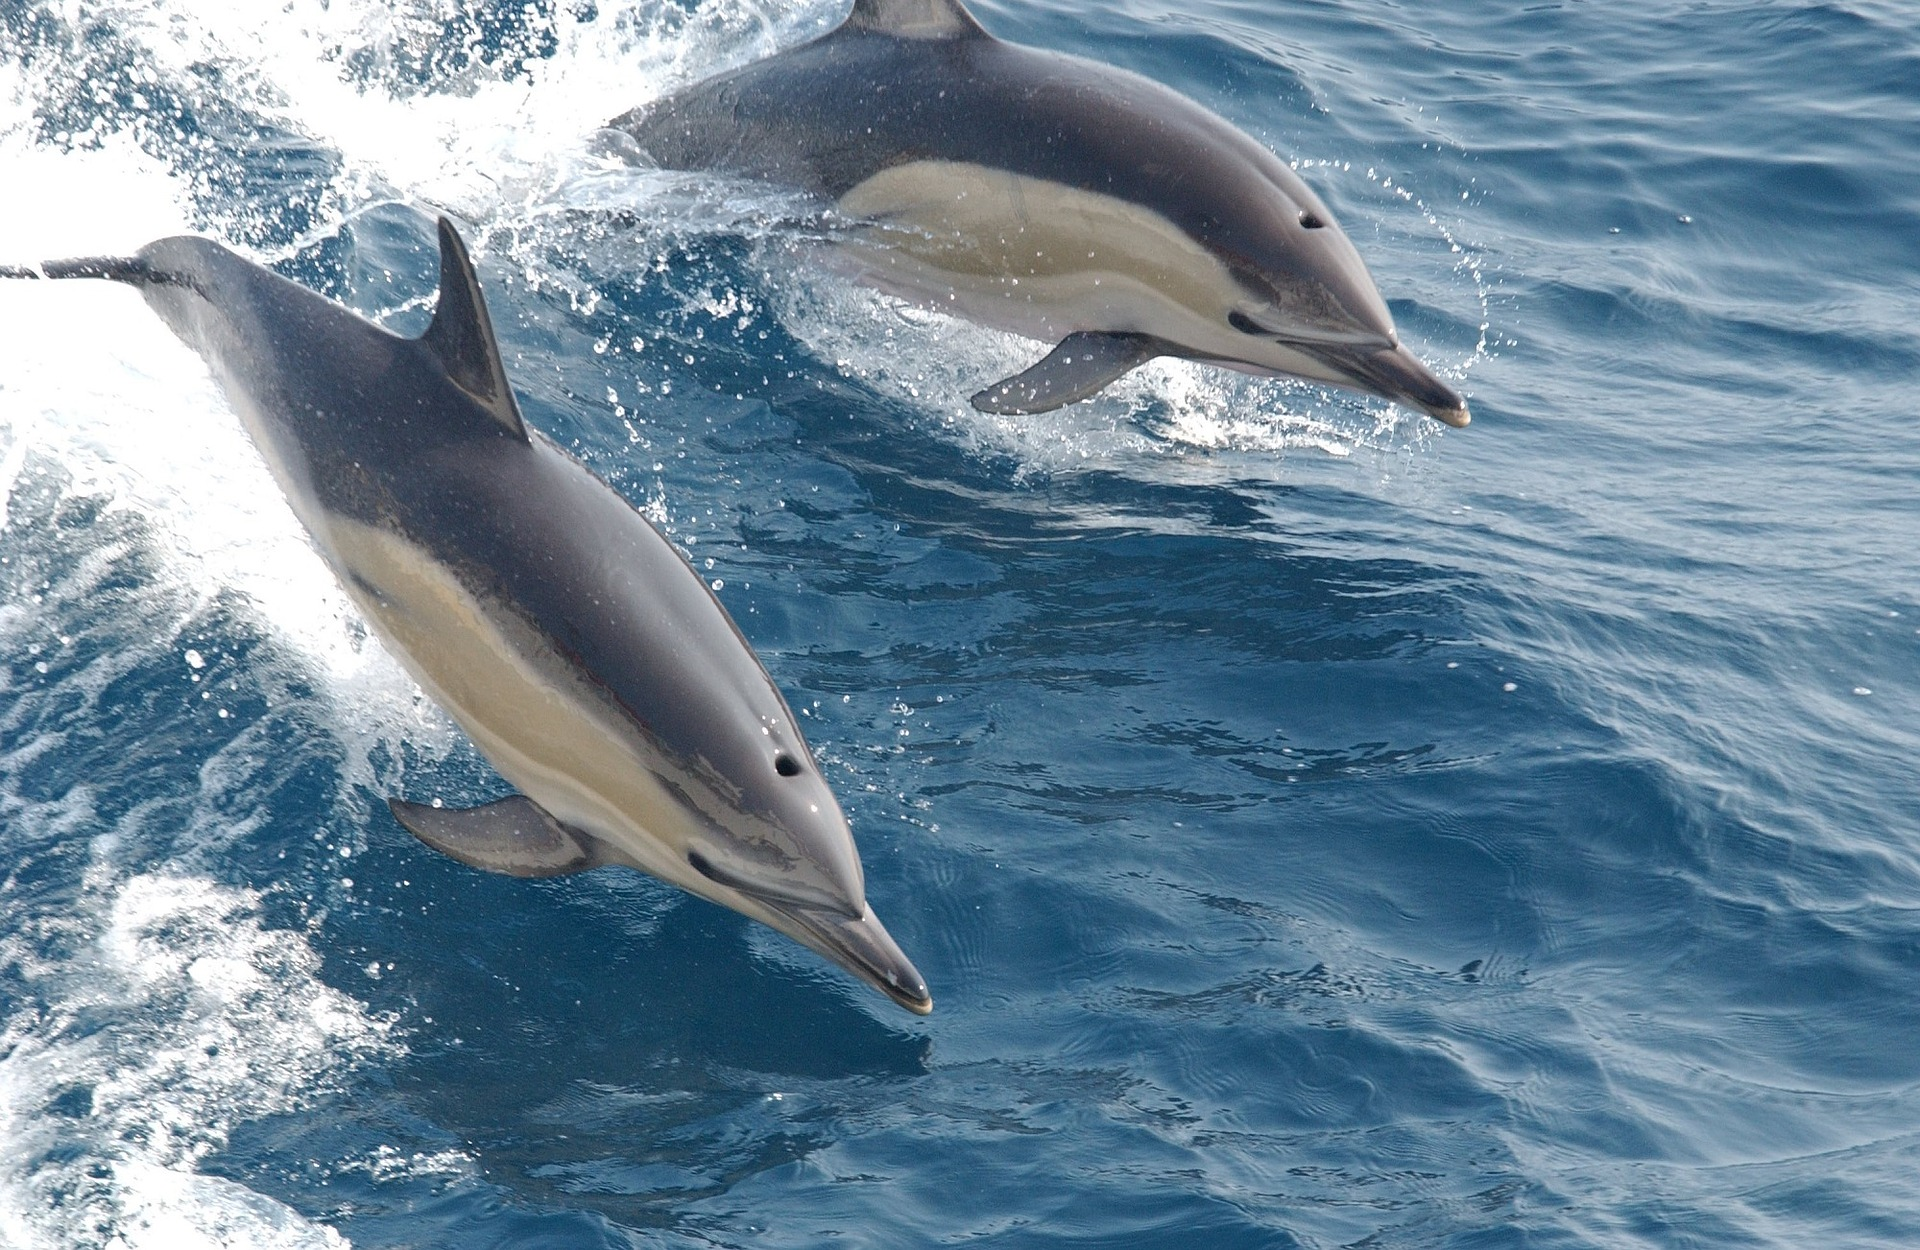 Common dolphins in the wild. This species is less popular for captivity than bottlenose dolphins as they have even more trouble adapting to such a life, but are sometimes still captured. Photo courtesy of pixabay.com